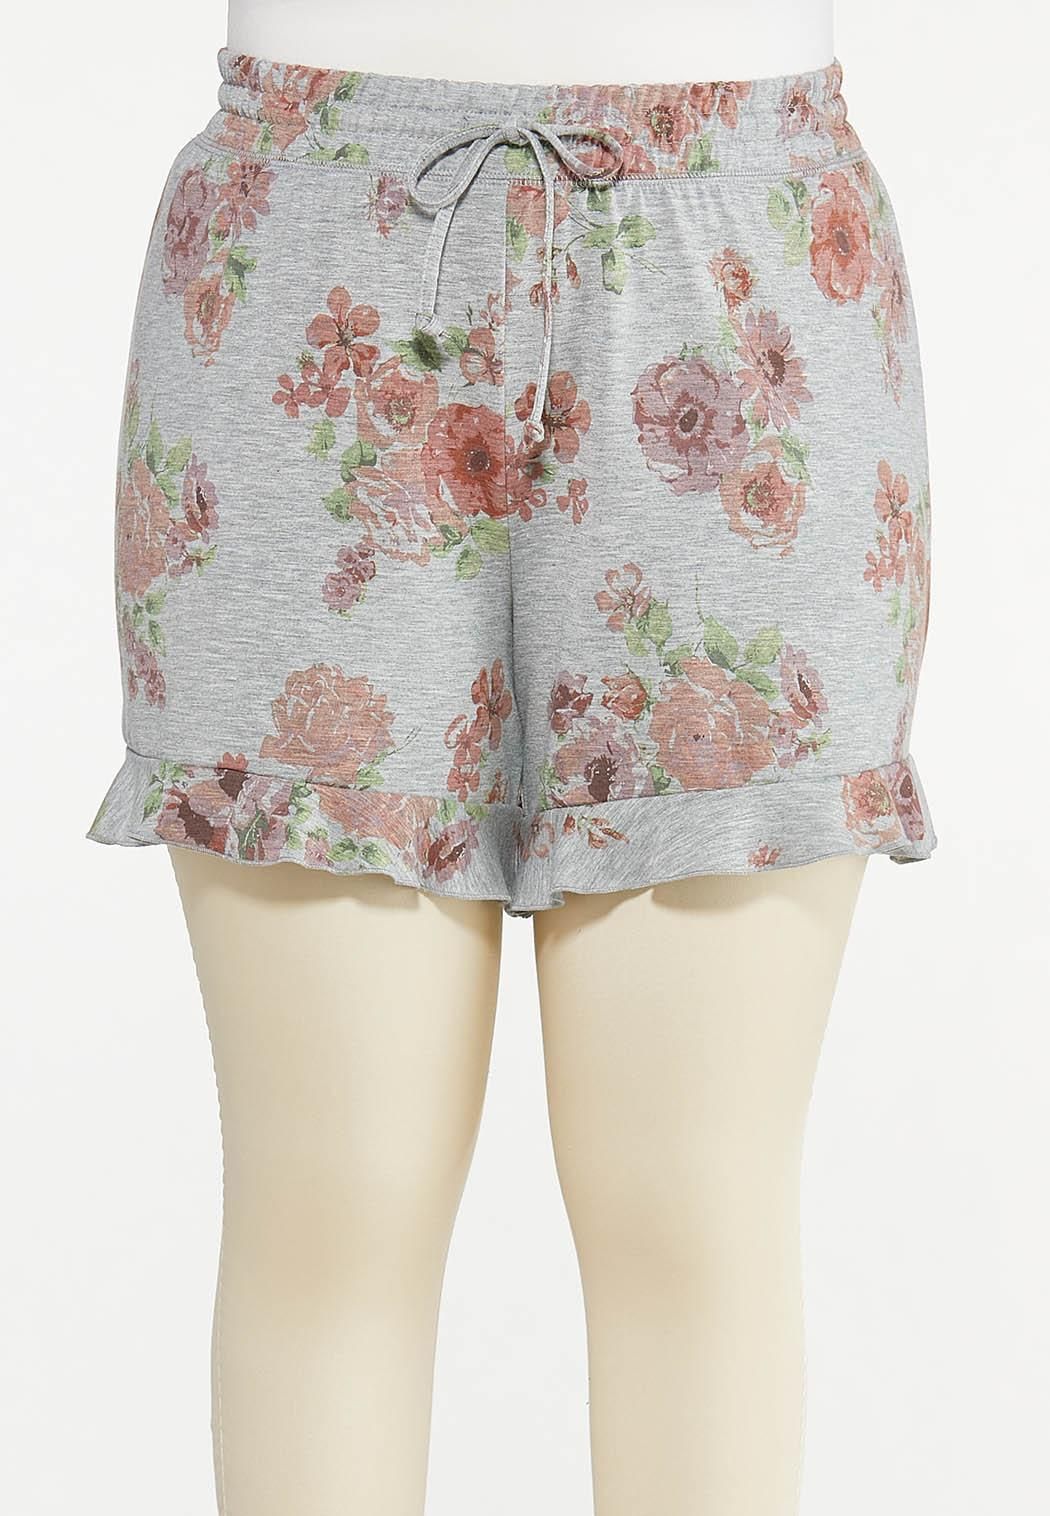 Plus Size Ruffled Floral Shorts